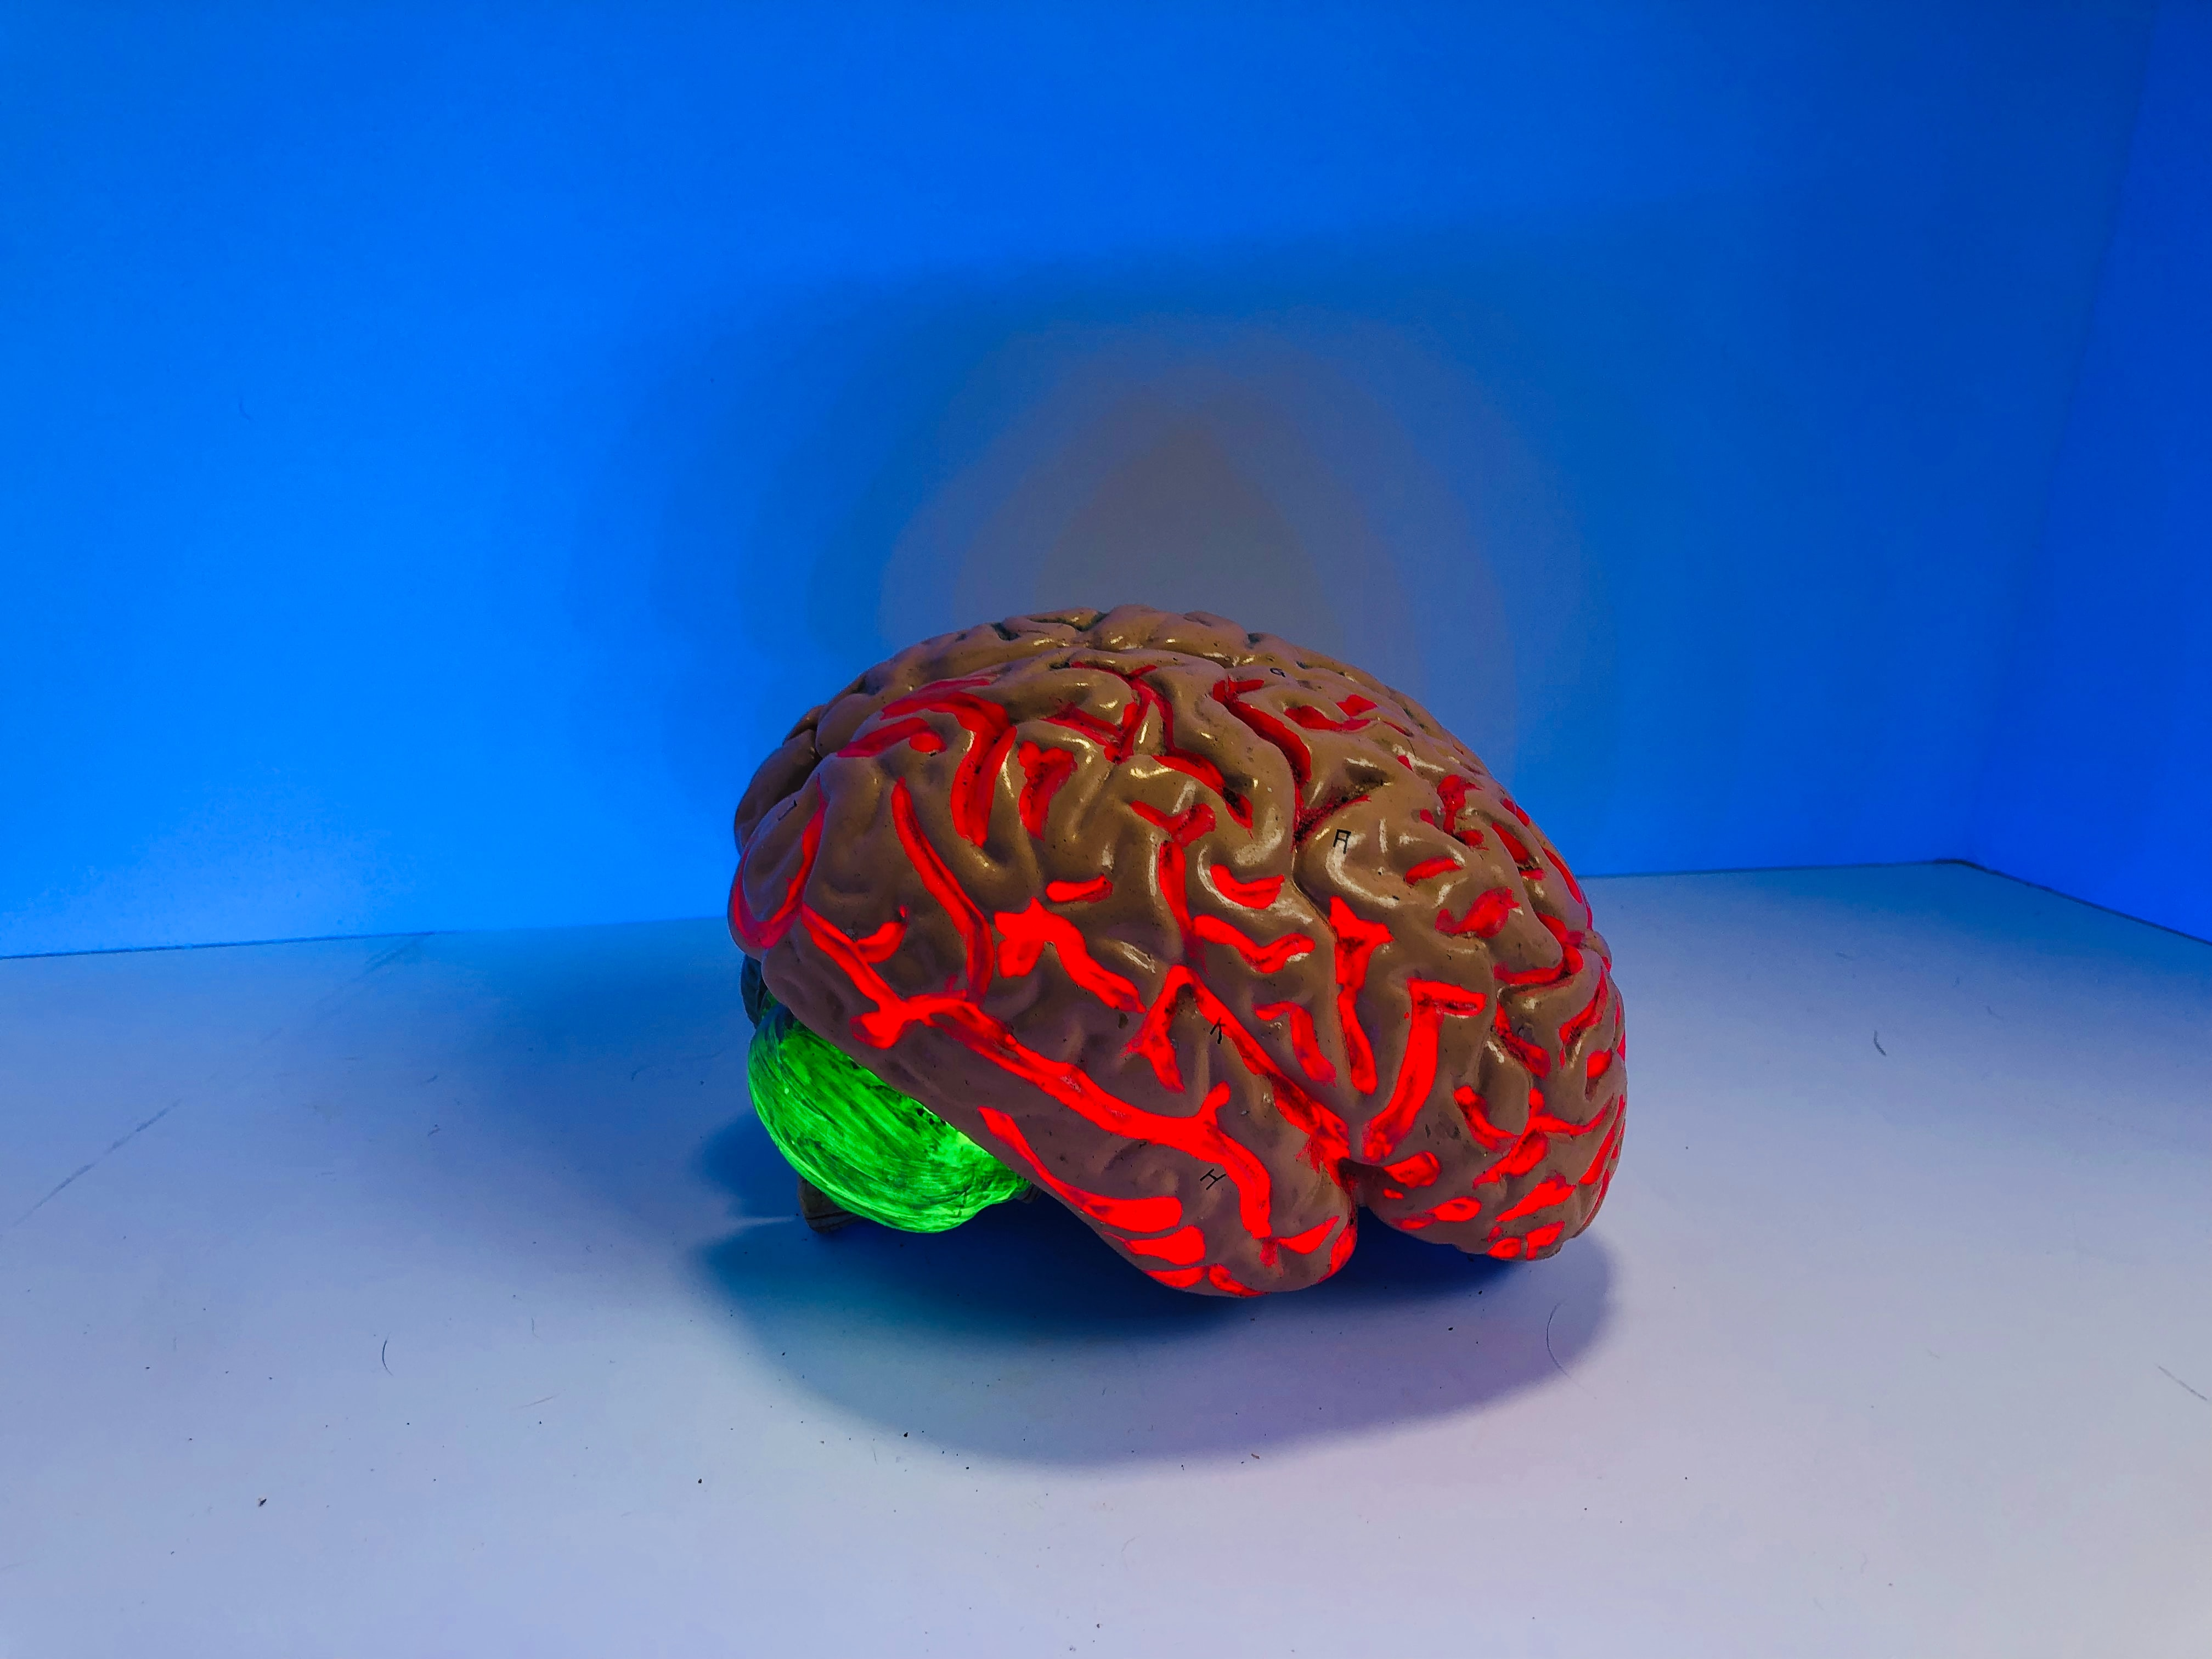 Studies Shows FDA Unapproved Brain Boosters Can Be Dangerous